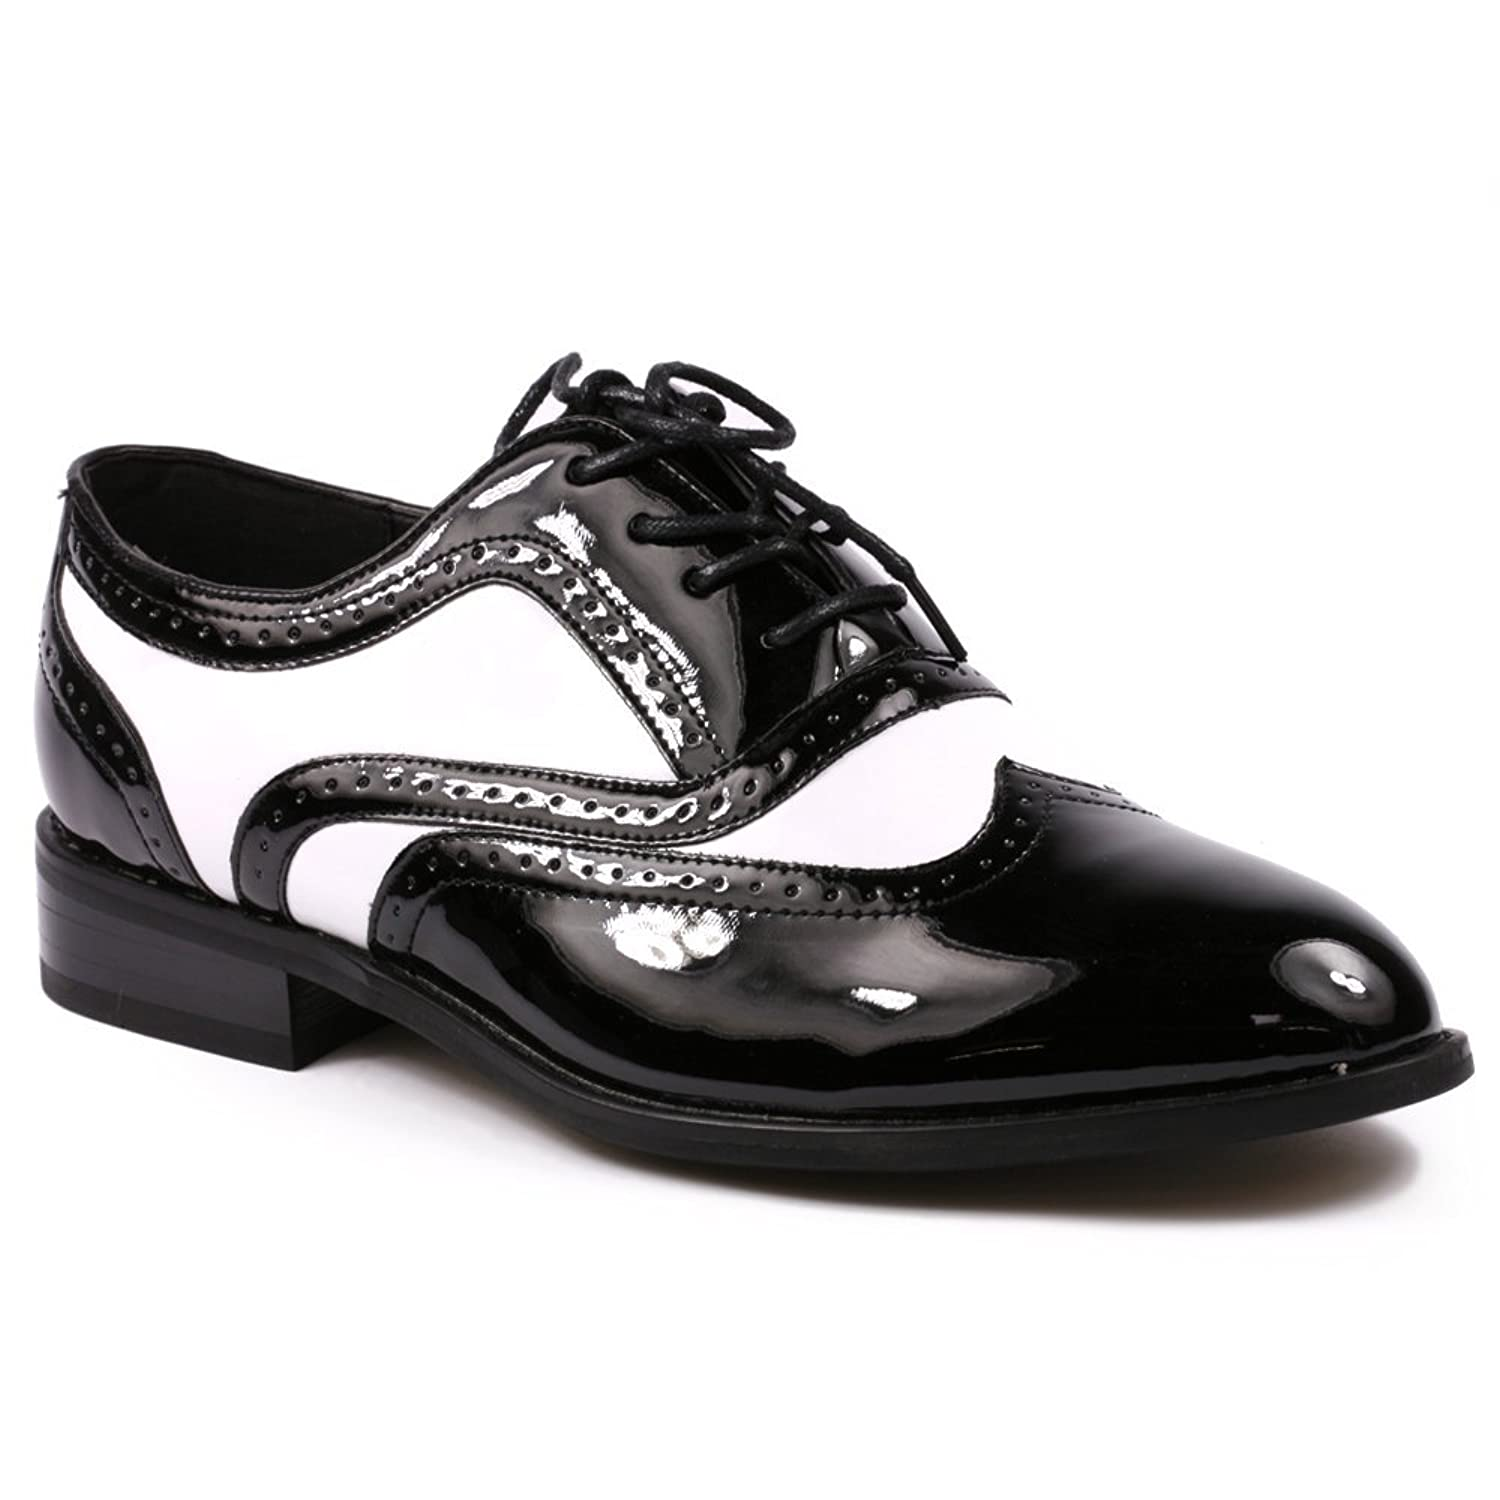 Mens Vintage Style Shoes| Retro Classic Shoes Mens Black White Patent Tuxedo Perforated Wing Tip Lace Up Oxford Dress Shoes RUNS ONE FULL SIZE BIG $38.99 AT vintagedancer.com